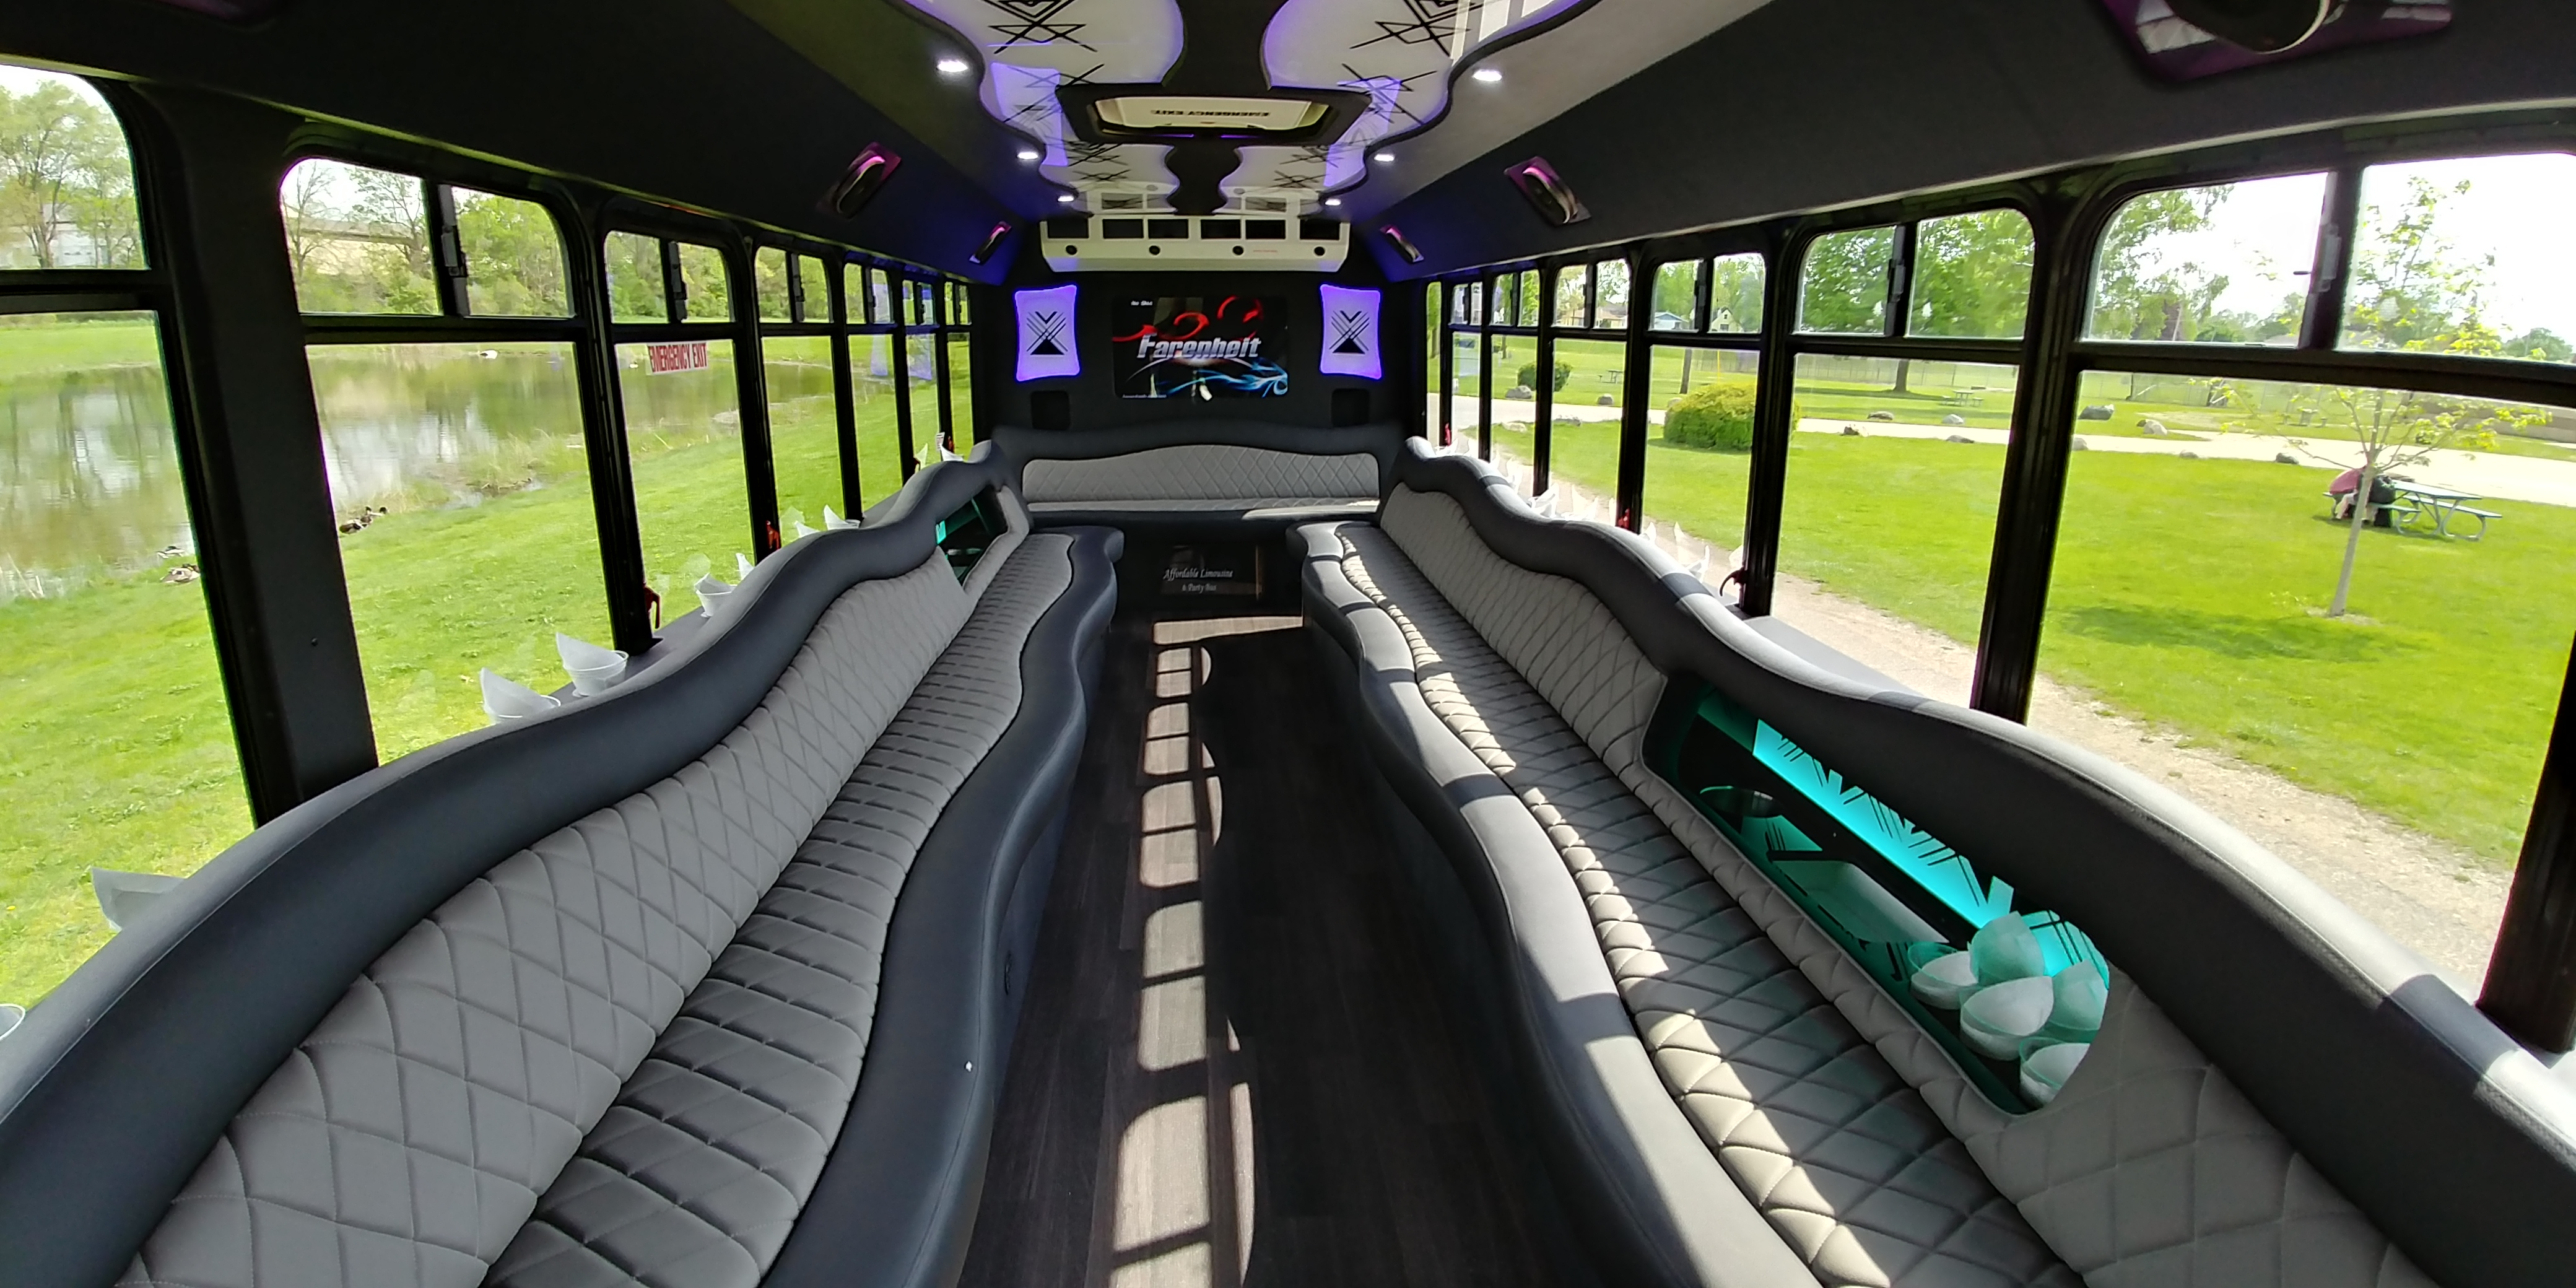 28 Passenger Luxury Limo Bus Interior 1